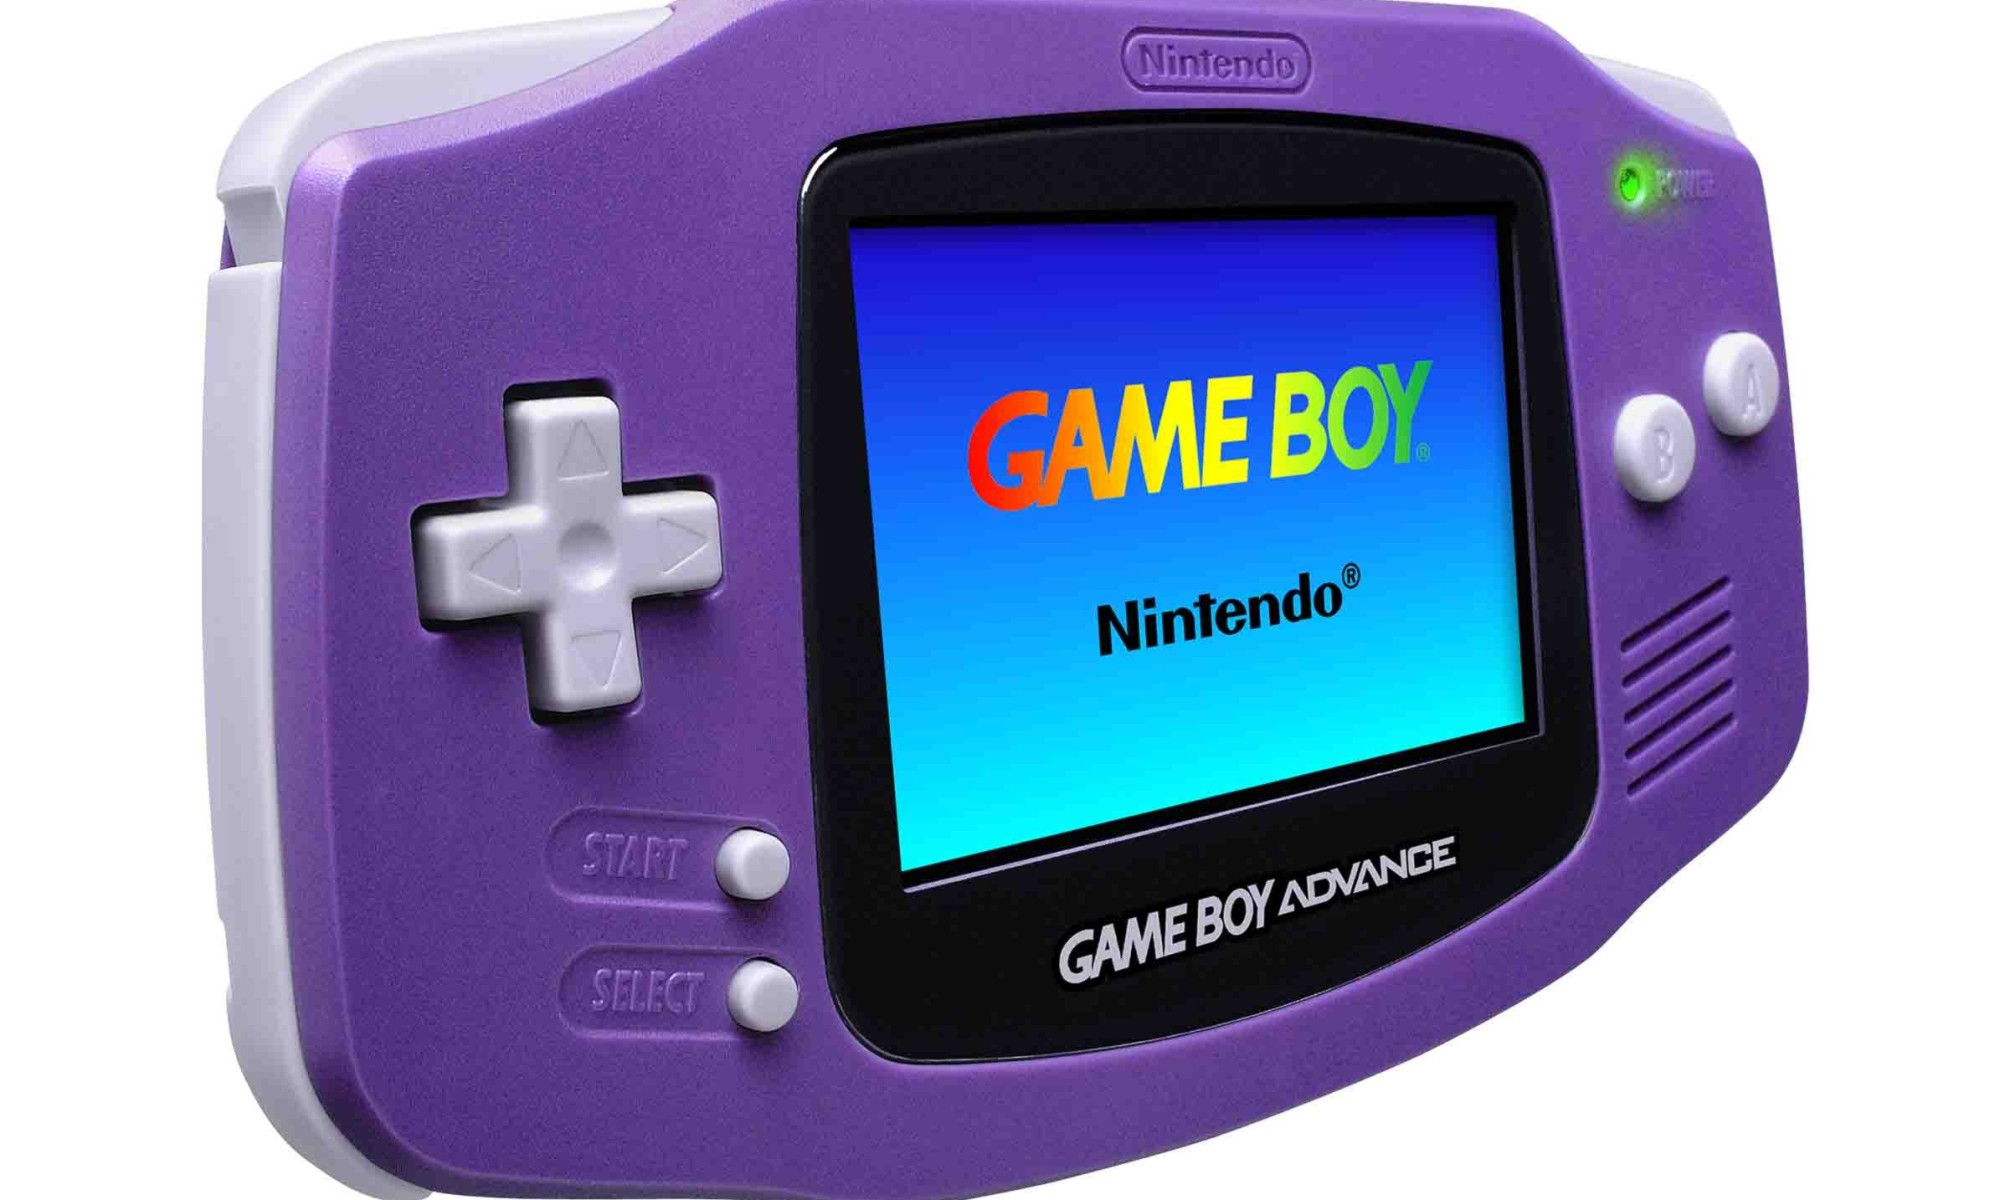 As Expected Gba Wii U Virtual Console Games Don T Support